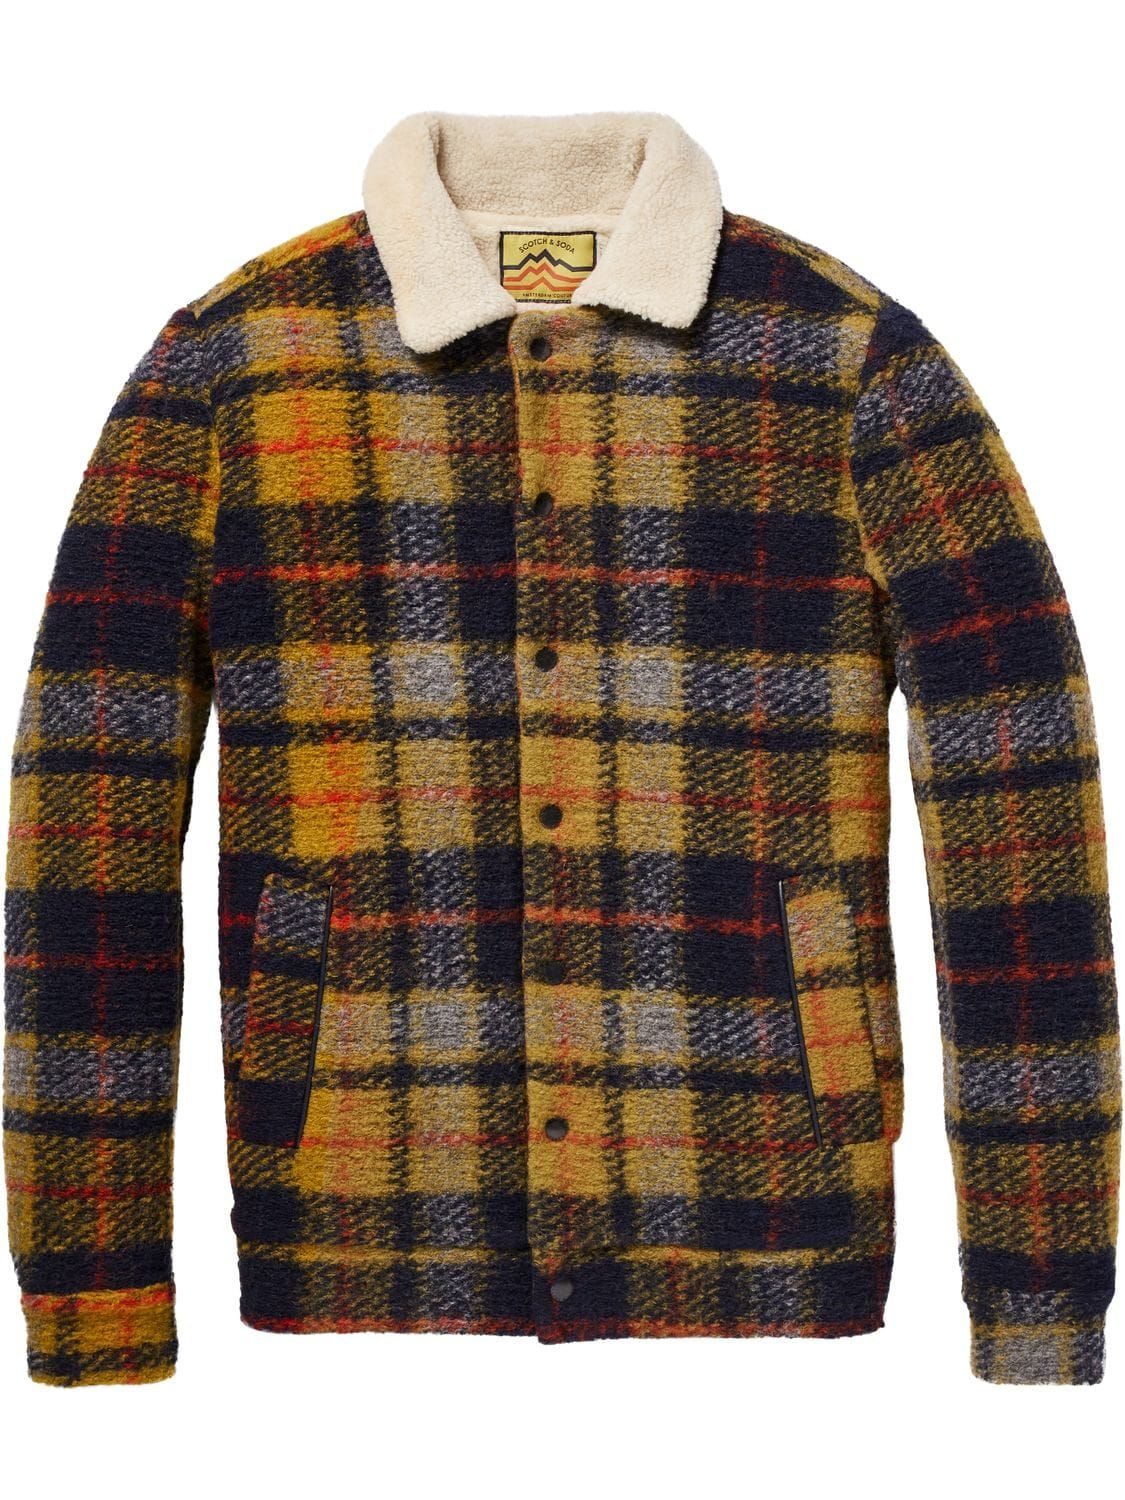 ddaeee0f56b1 Checked Wool Jacket Official Scotch & Soda online store, 30 days return  guarantee. Now